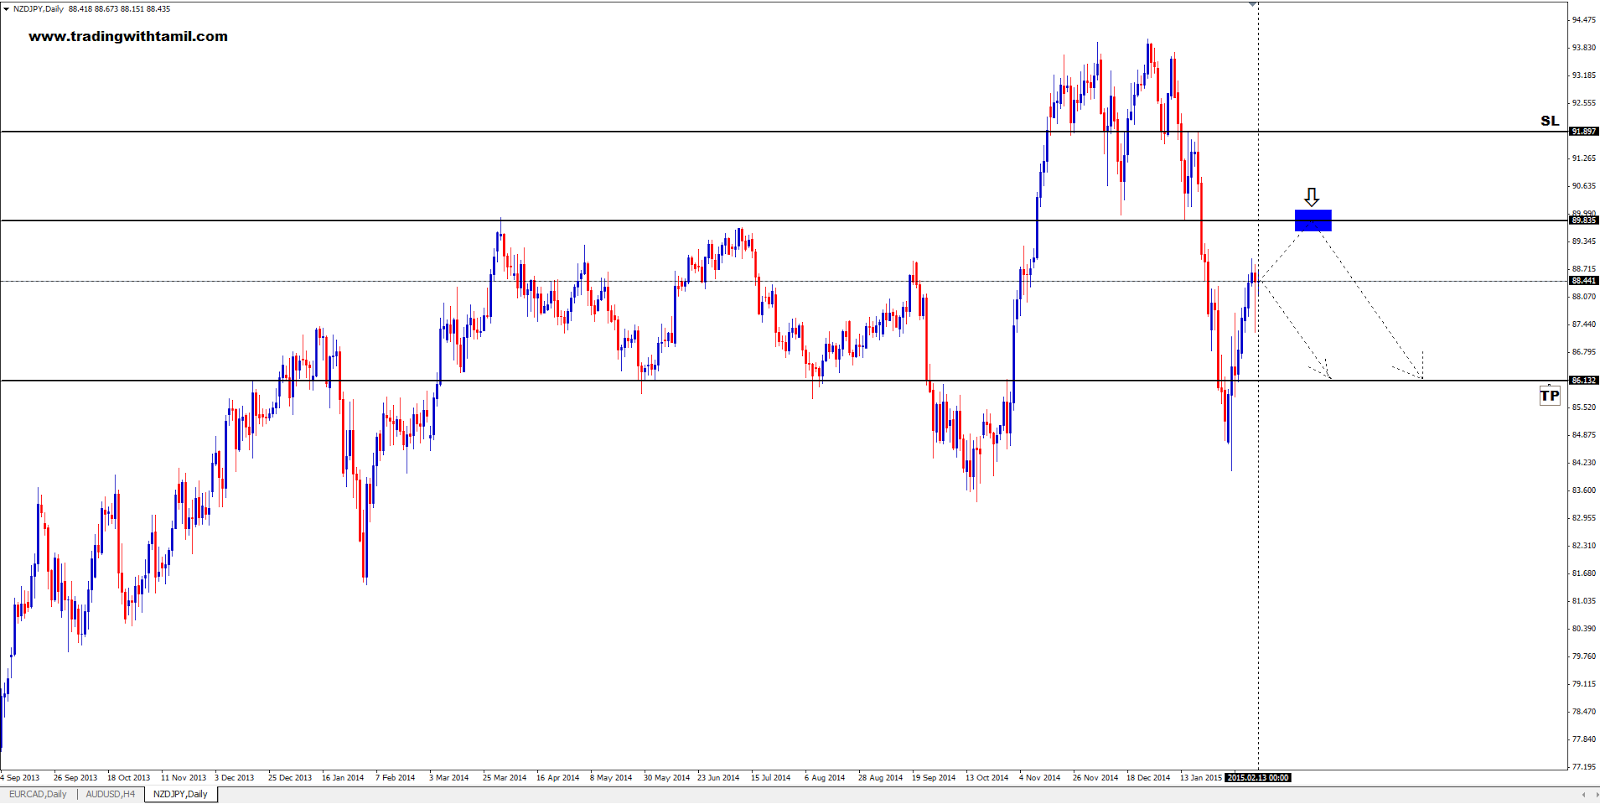 Q-FOREX LIVE CHALLENGING SIGNAL 15 Feb 2015 – SELL NZD/JPY